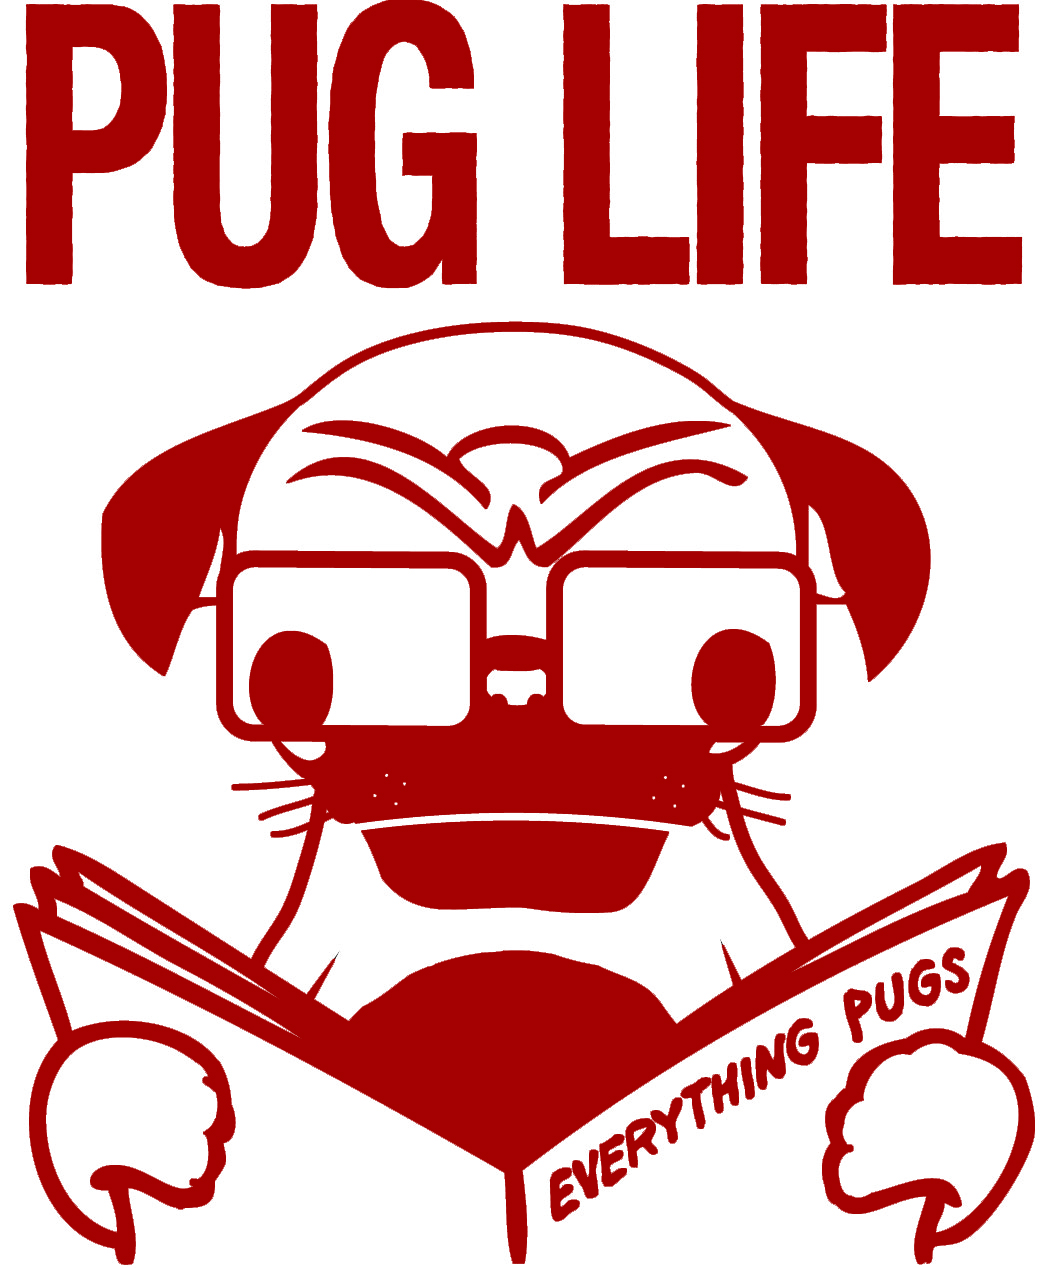 Puglife_red_original